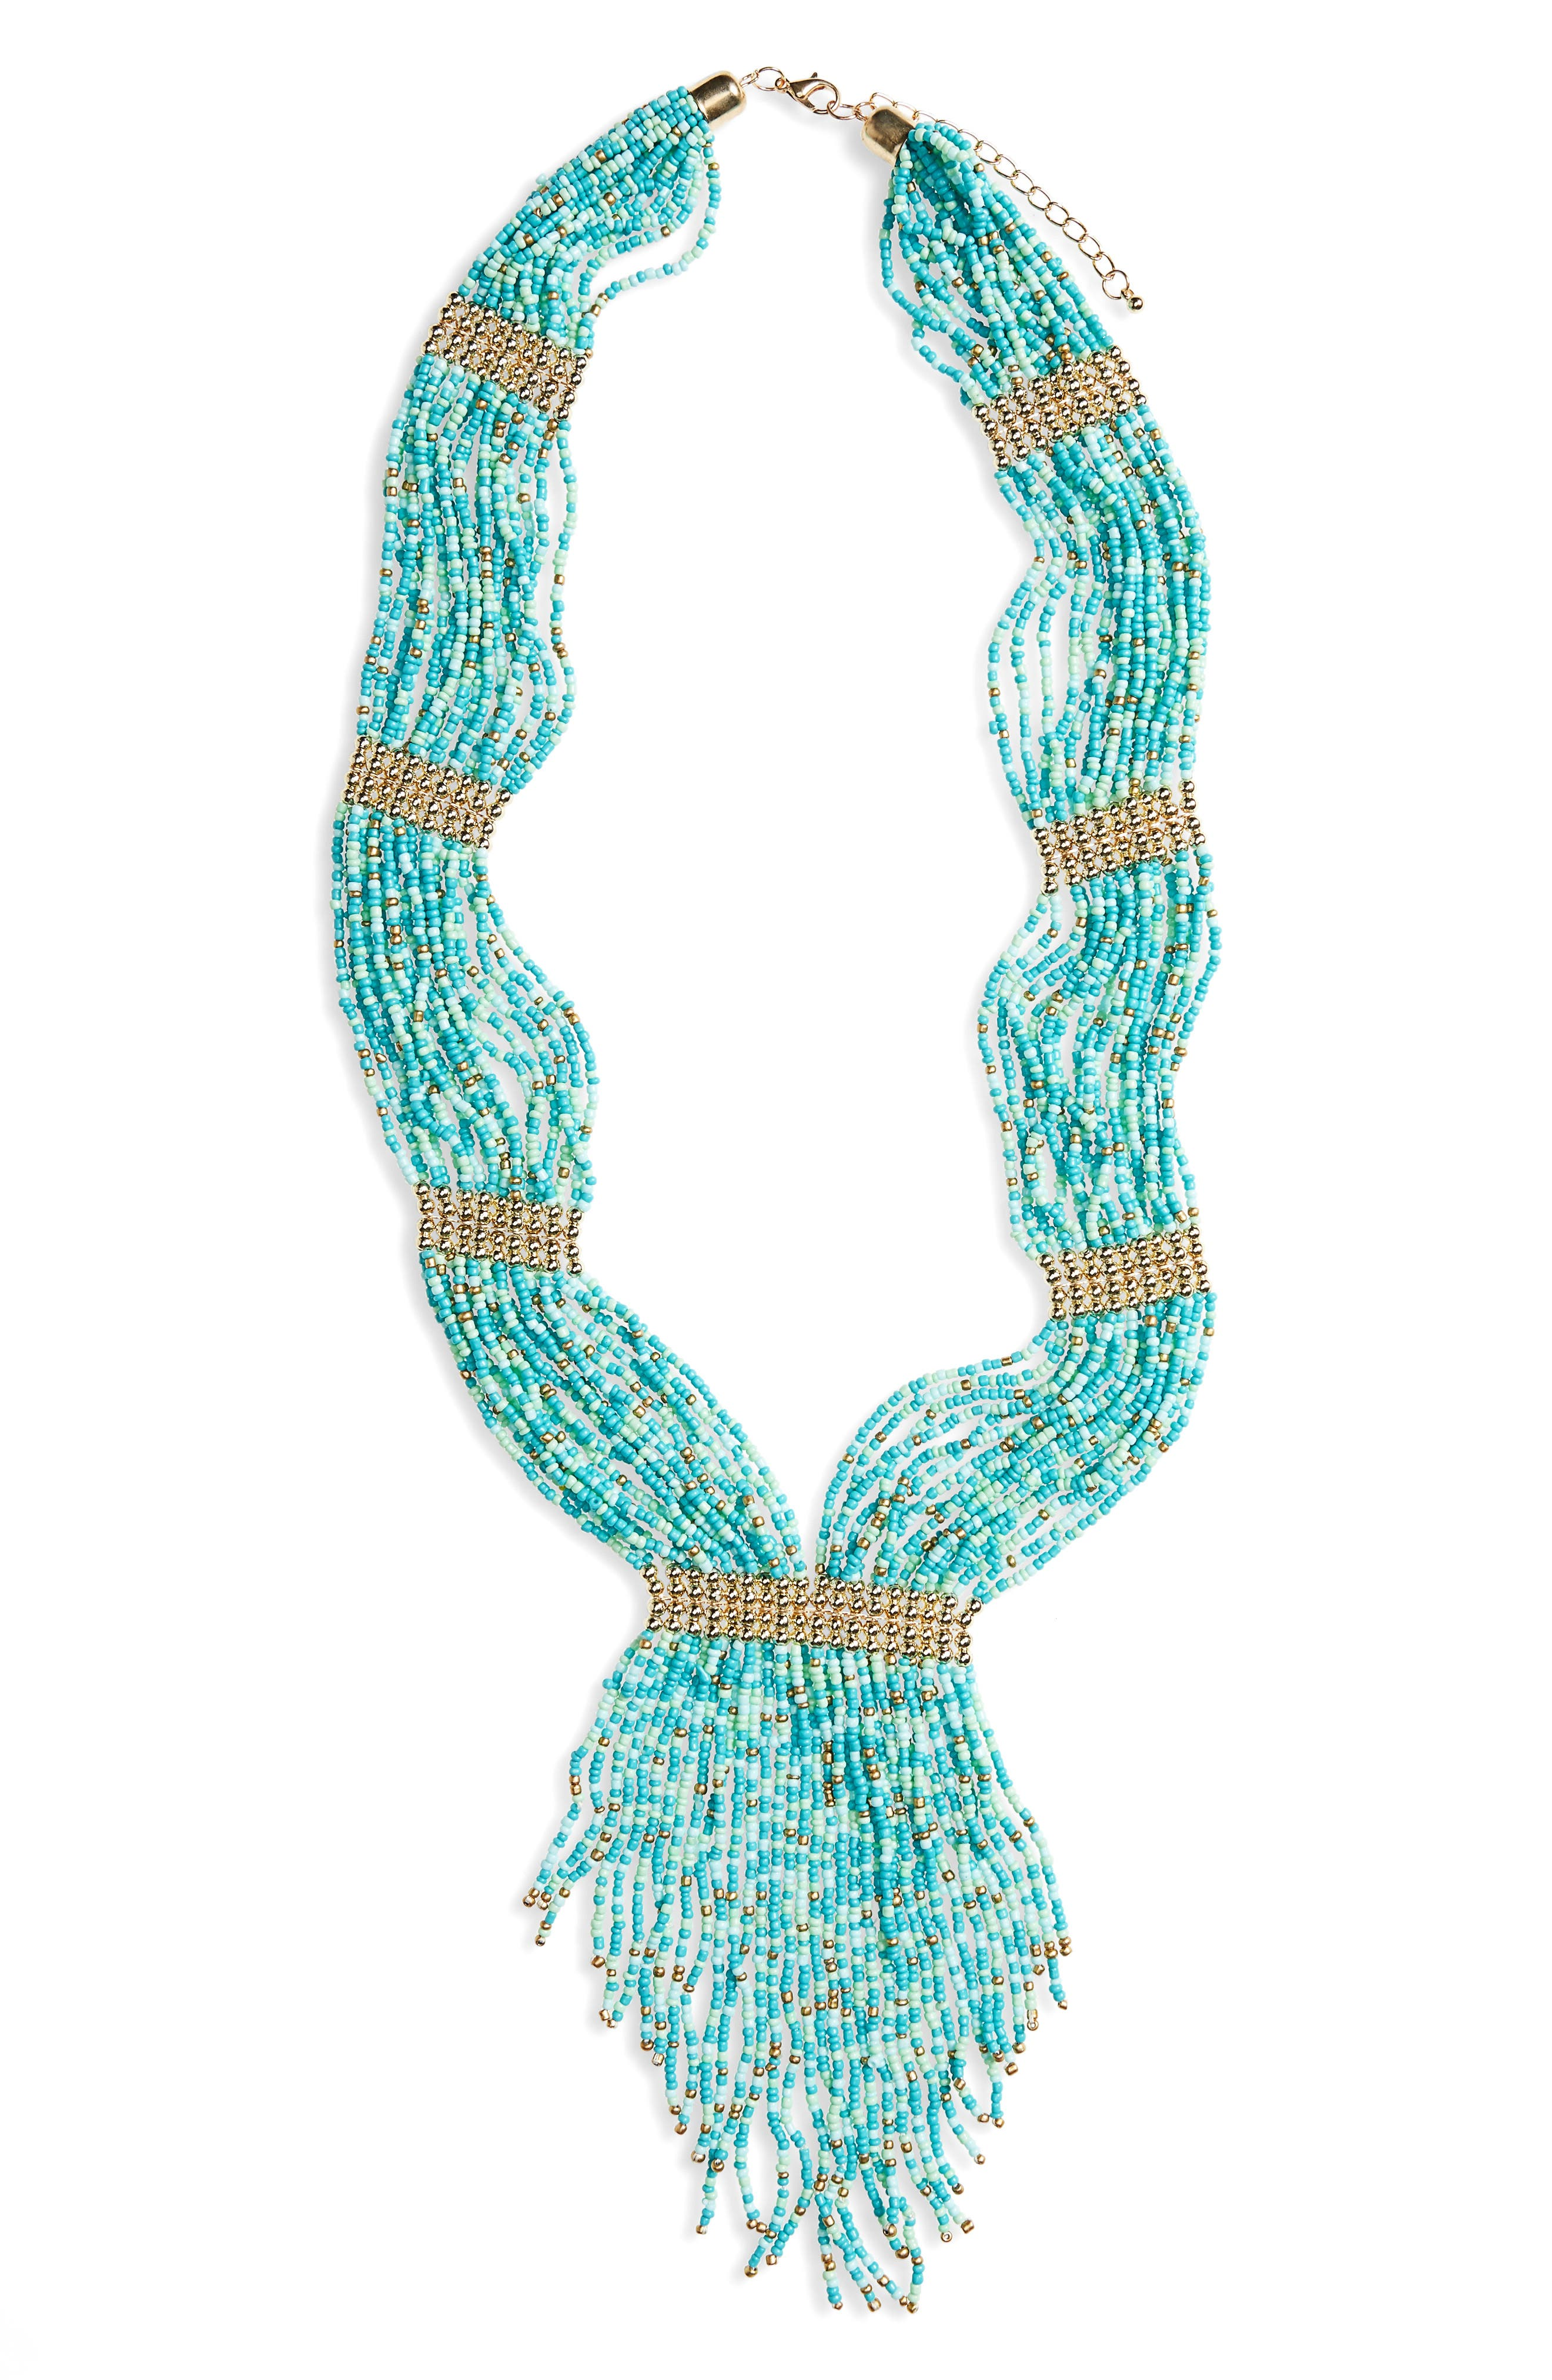 Bead Statement Necklace,                             Main thumbnail 1, color,                             Turquoise